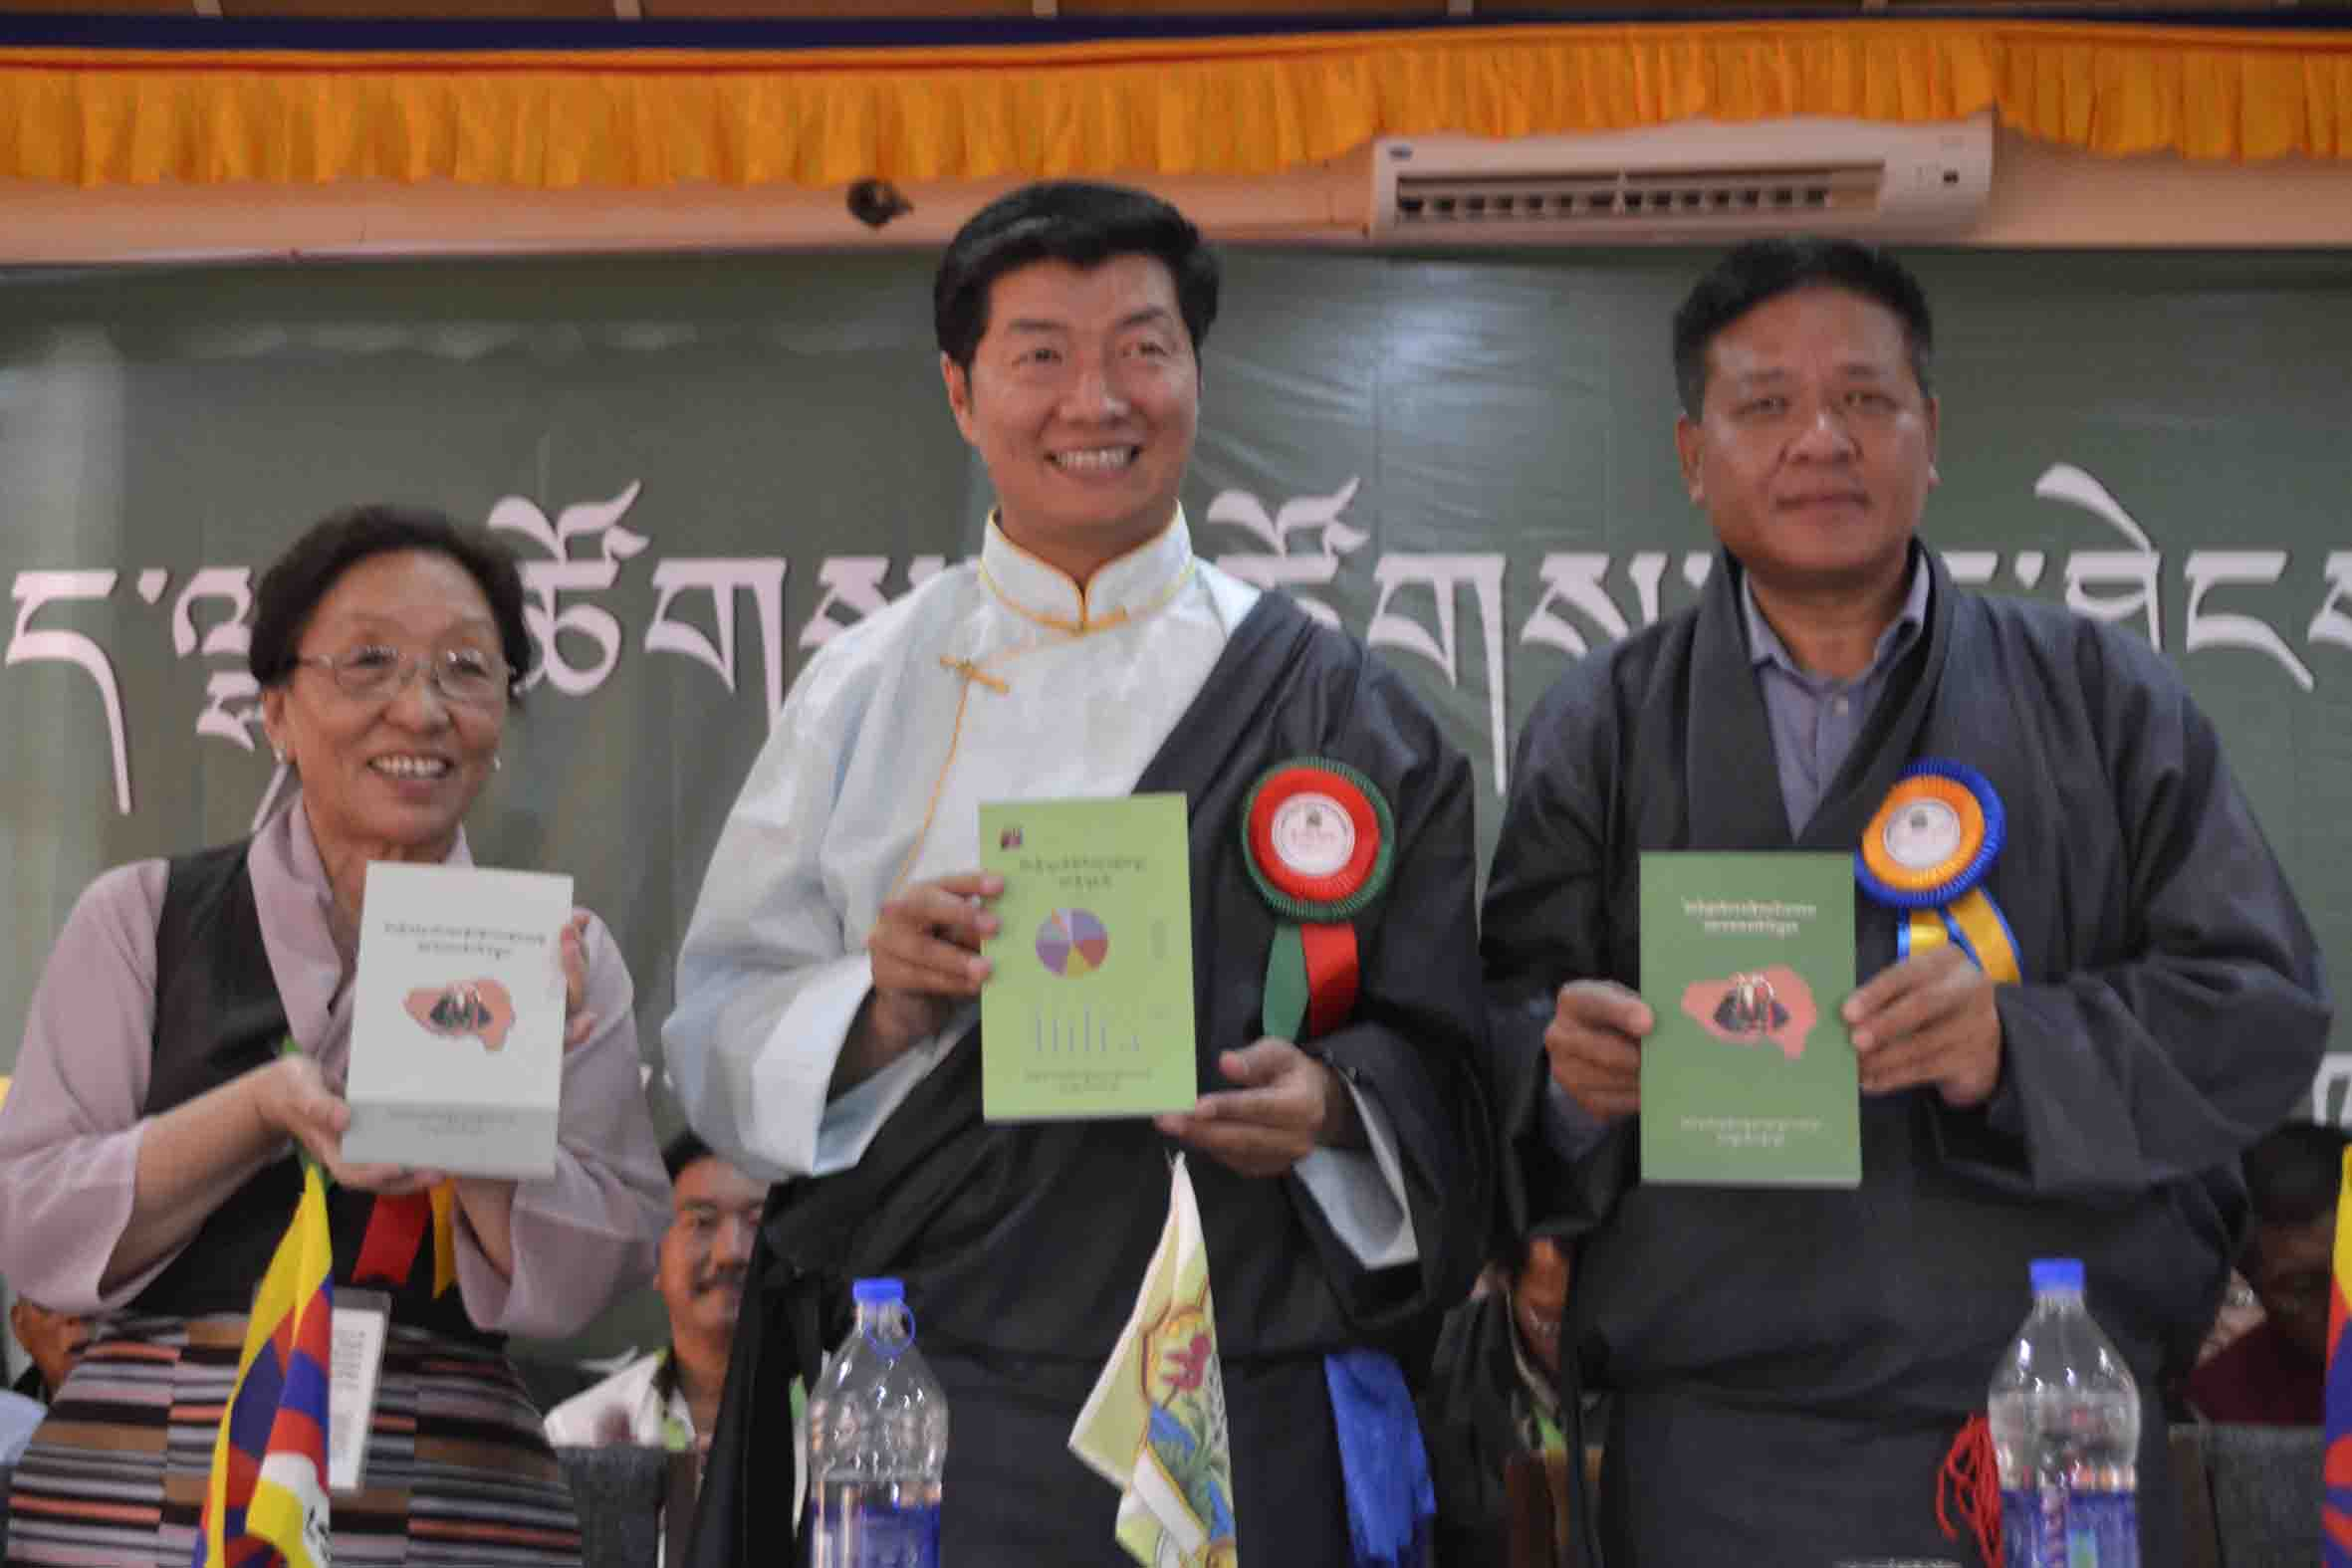 Dr. Lobsang Sangay, Tibetan Political leader(Sikyong), Mrs. Rinchen Khando, founding President of Tibetan Women's Association and former Kalon and Mr. Penpa Tsering, Speaker of Tibetan Parliament in Exile. (Photo courtesy: TWA)